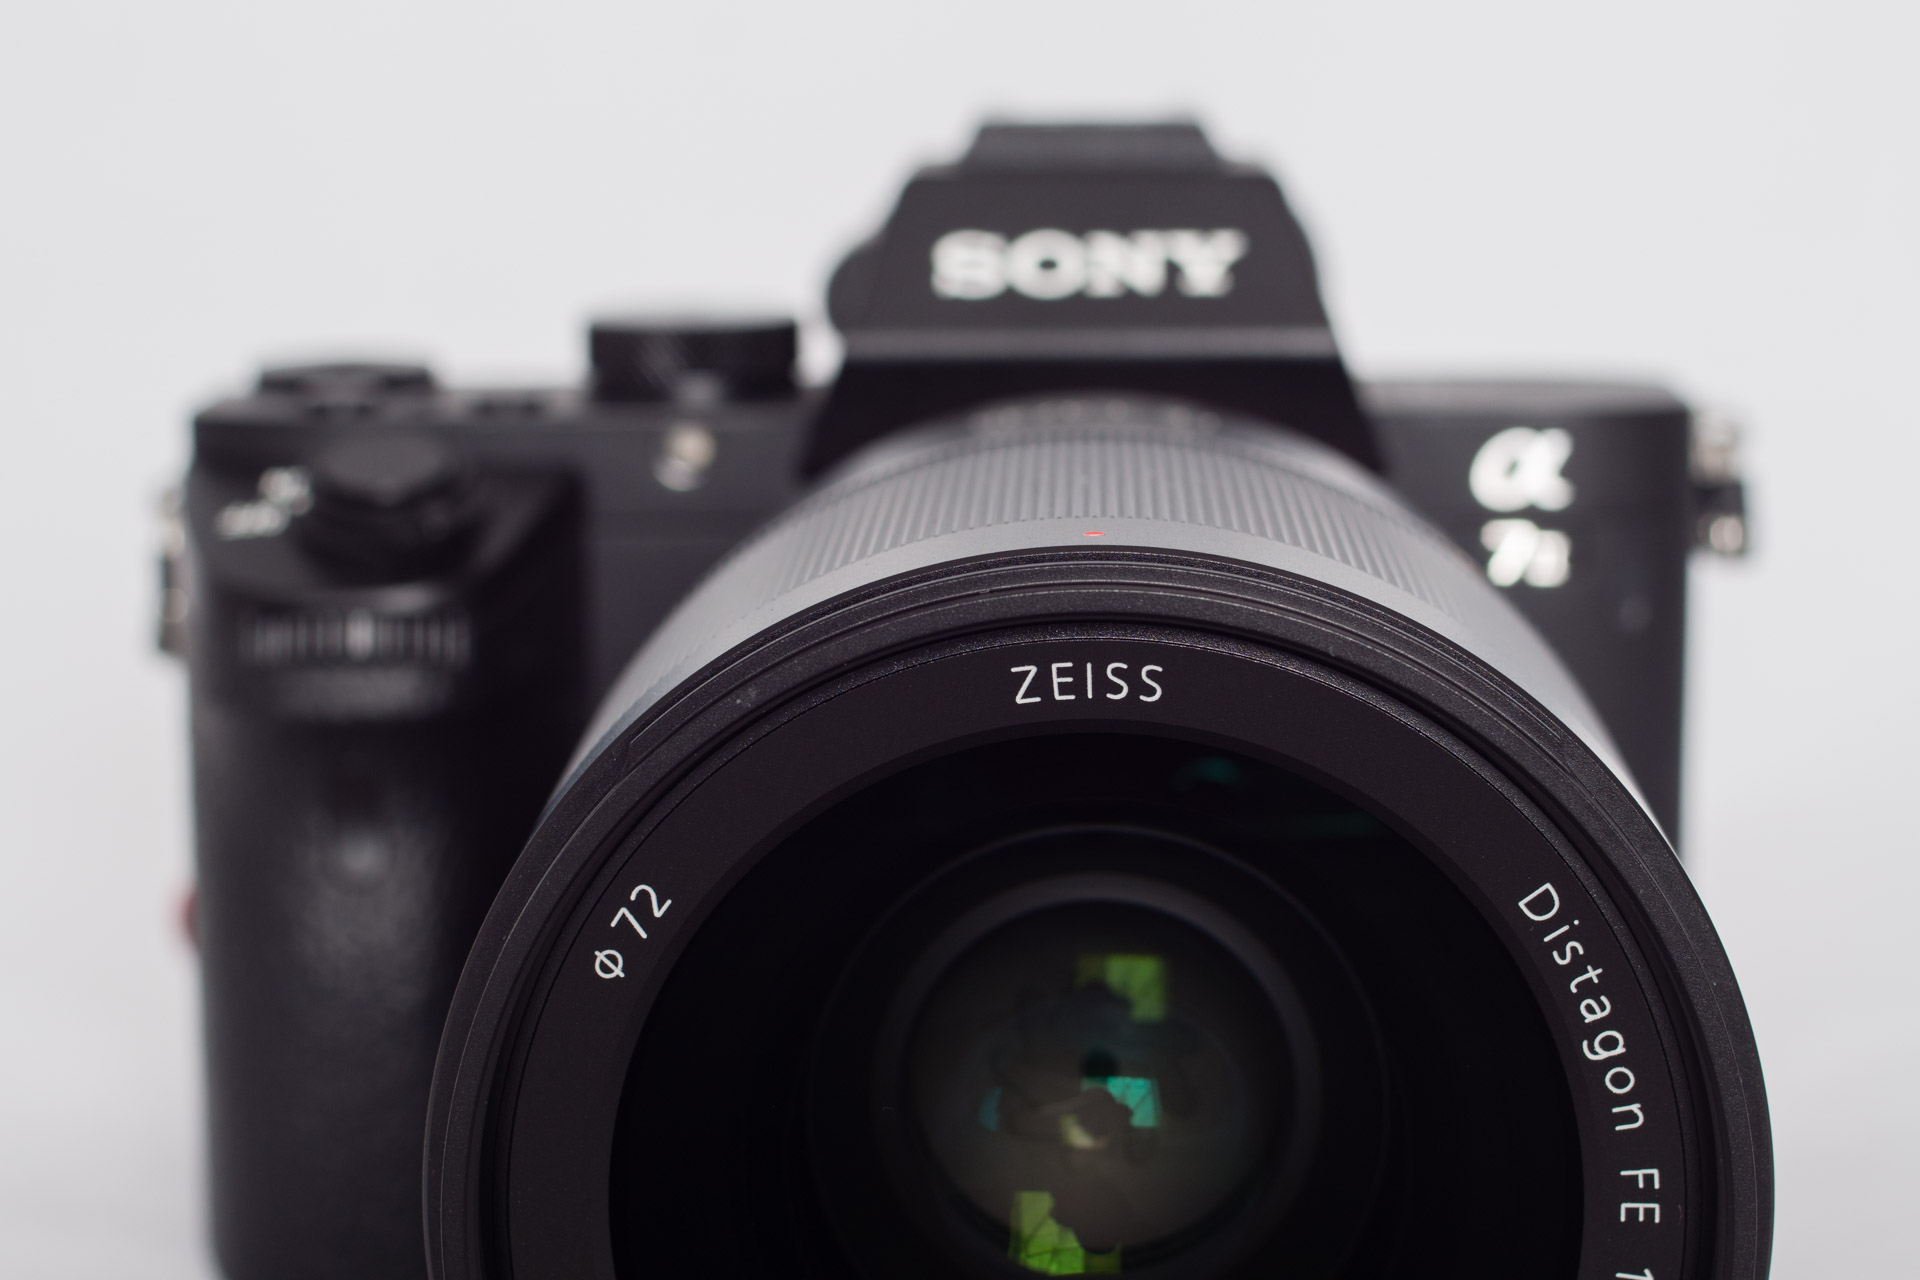 Sony Zeiss Distagon 35mm Lens